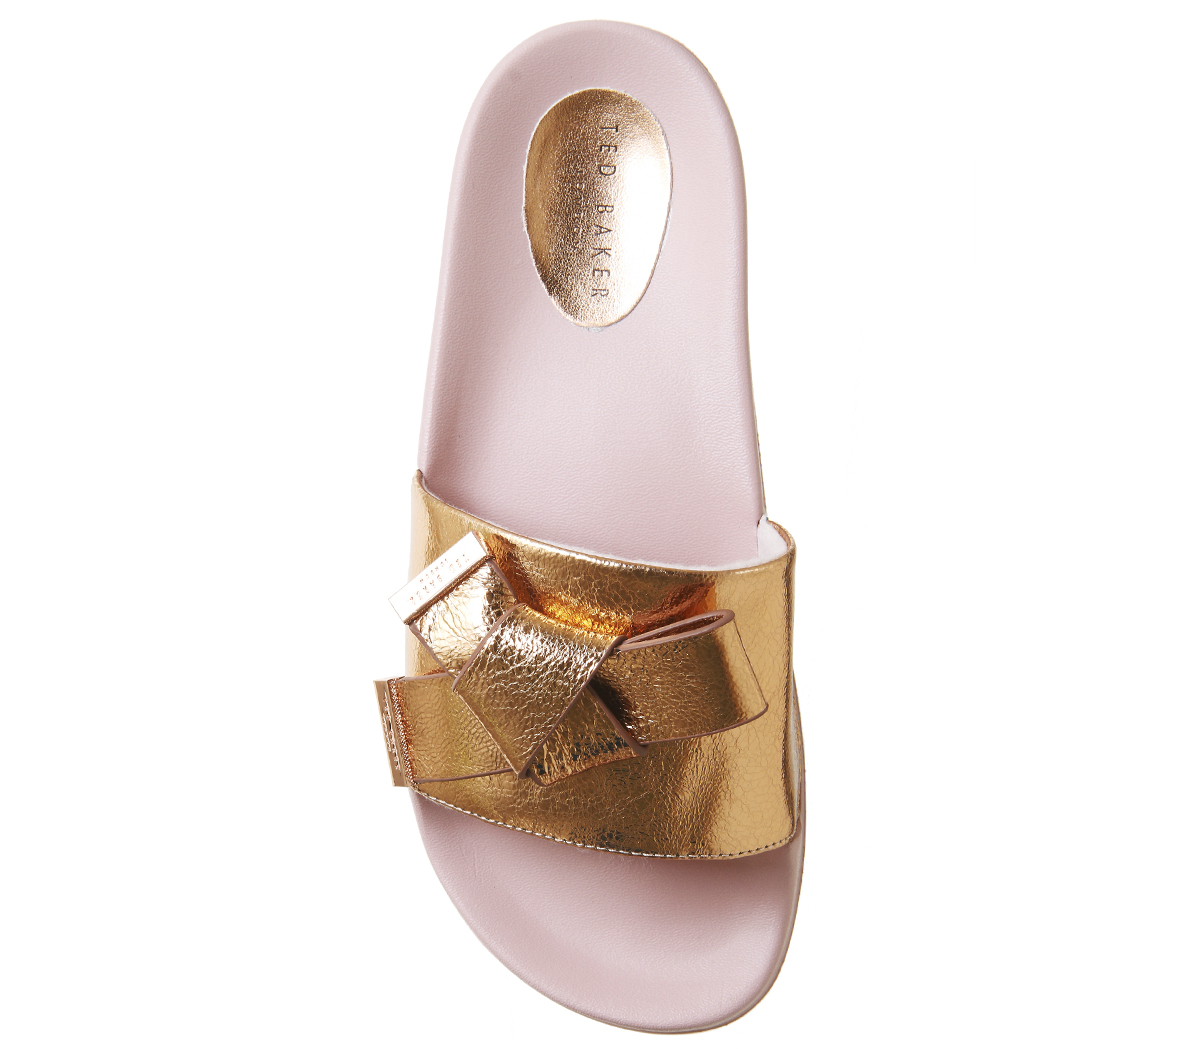 1a5c00a42a1f Womens Ted Baker Melvah Bow Slides ROSE GOLD LEATHER Sandals